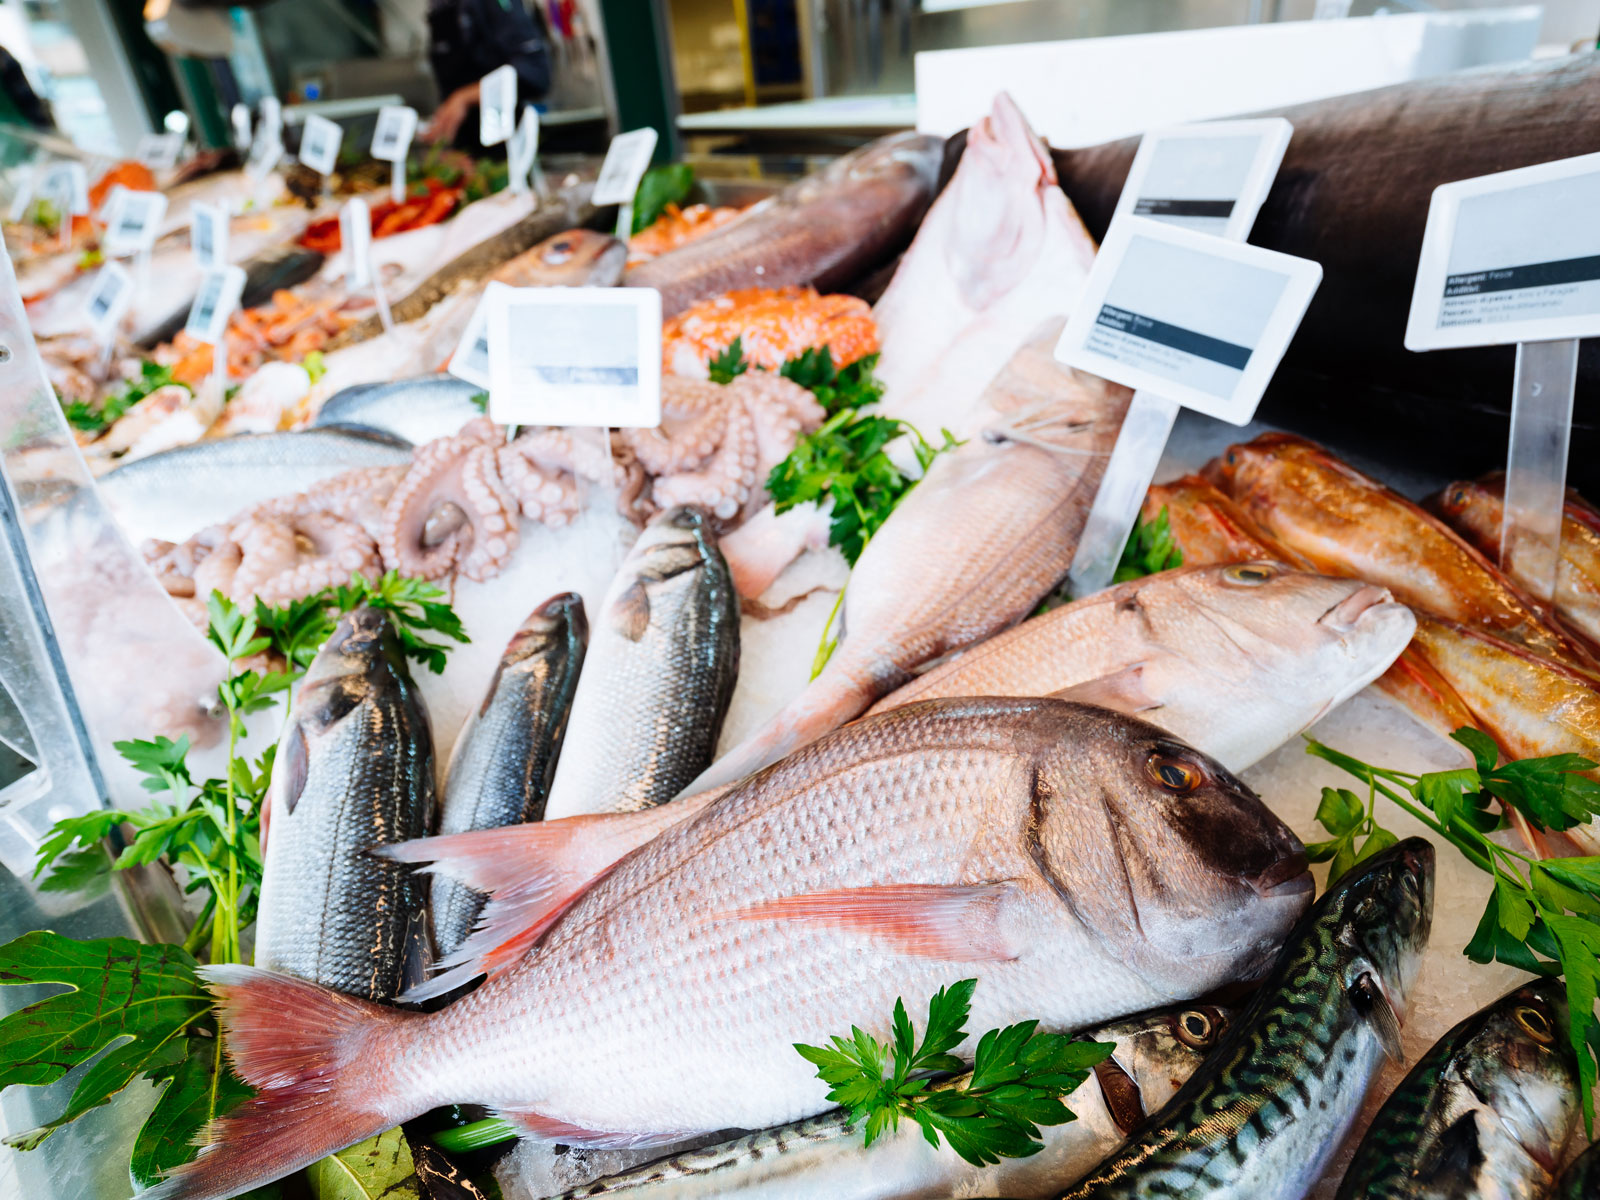 How Sustainable Is the Seafood at Your Supermarket?